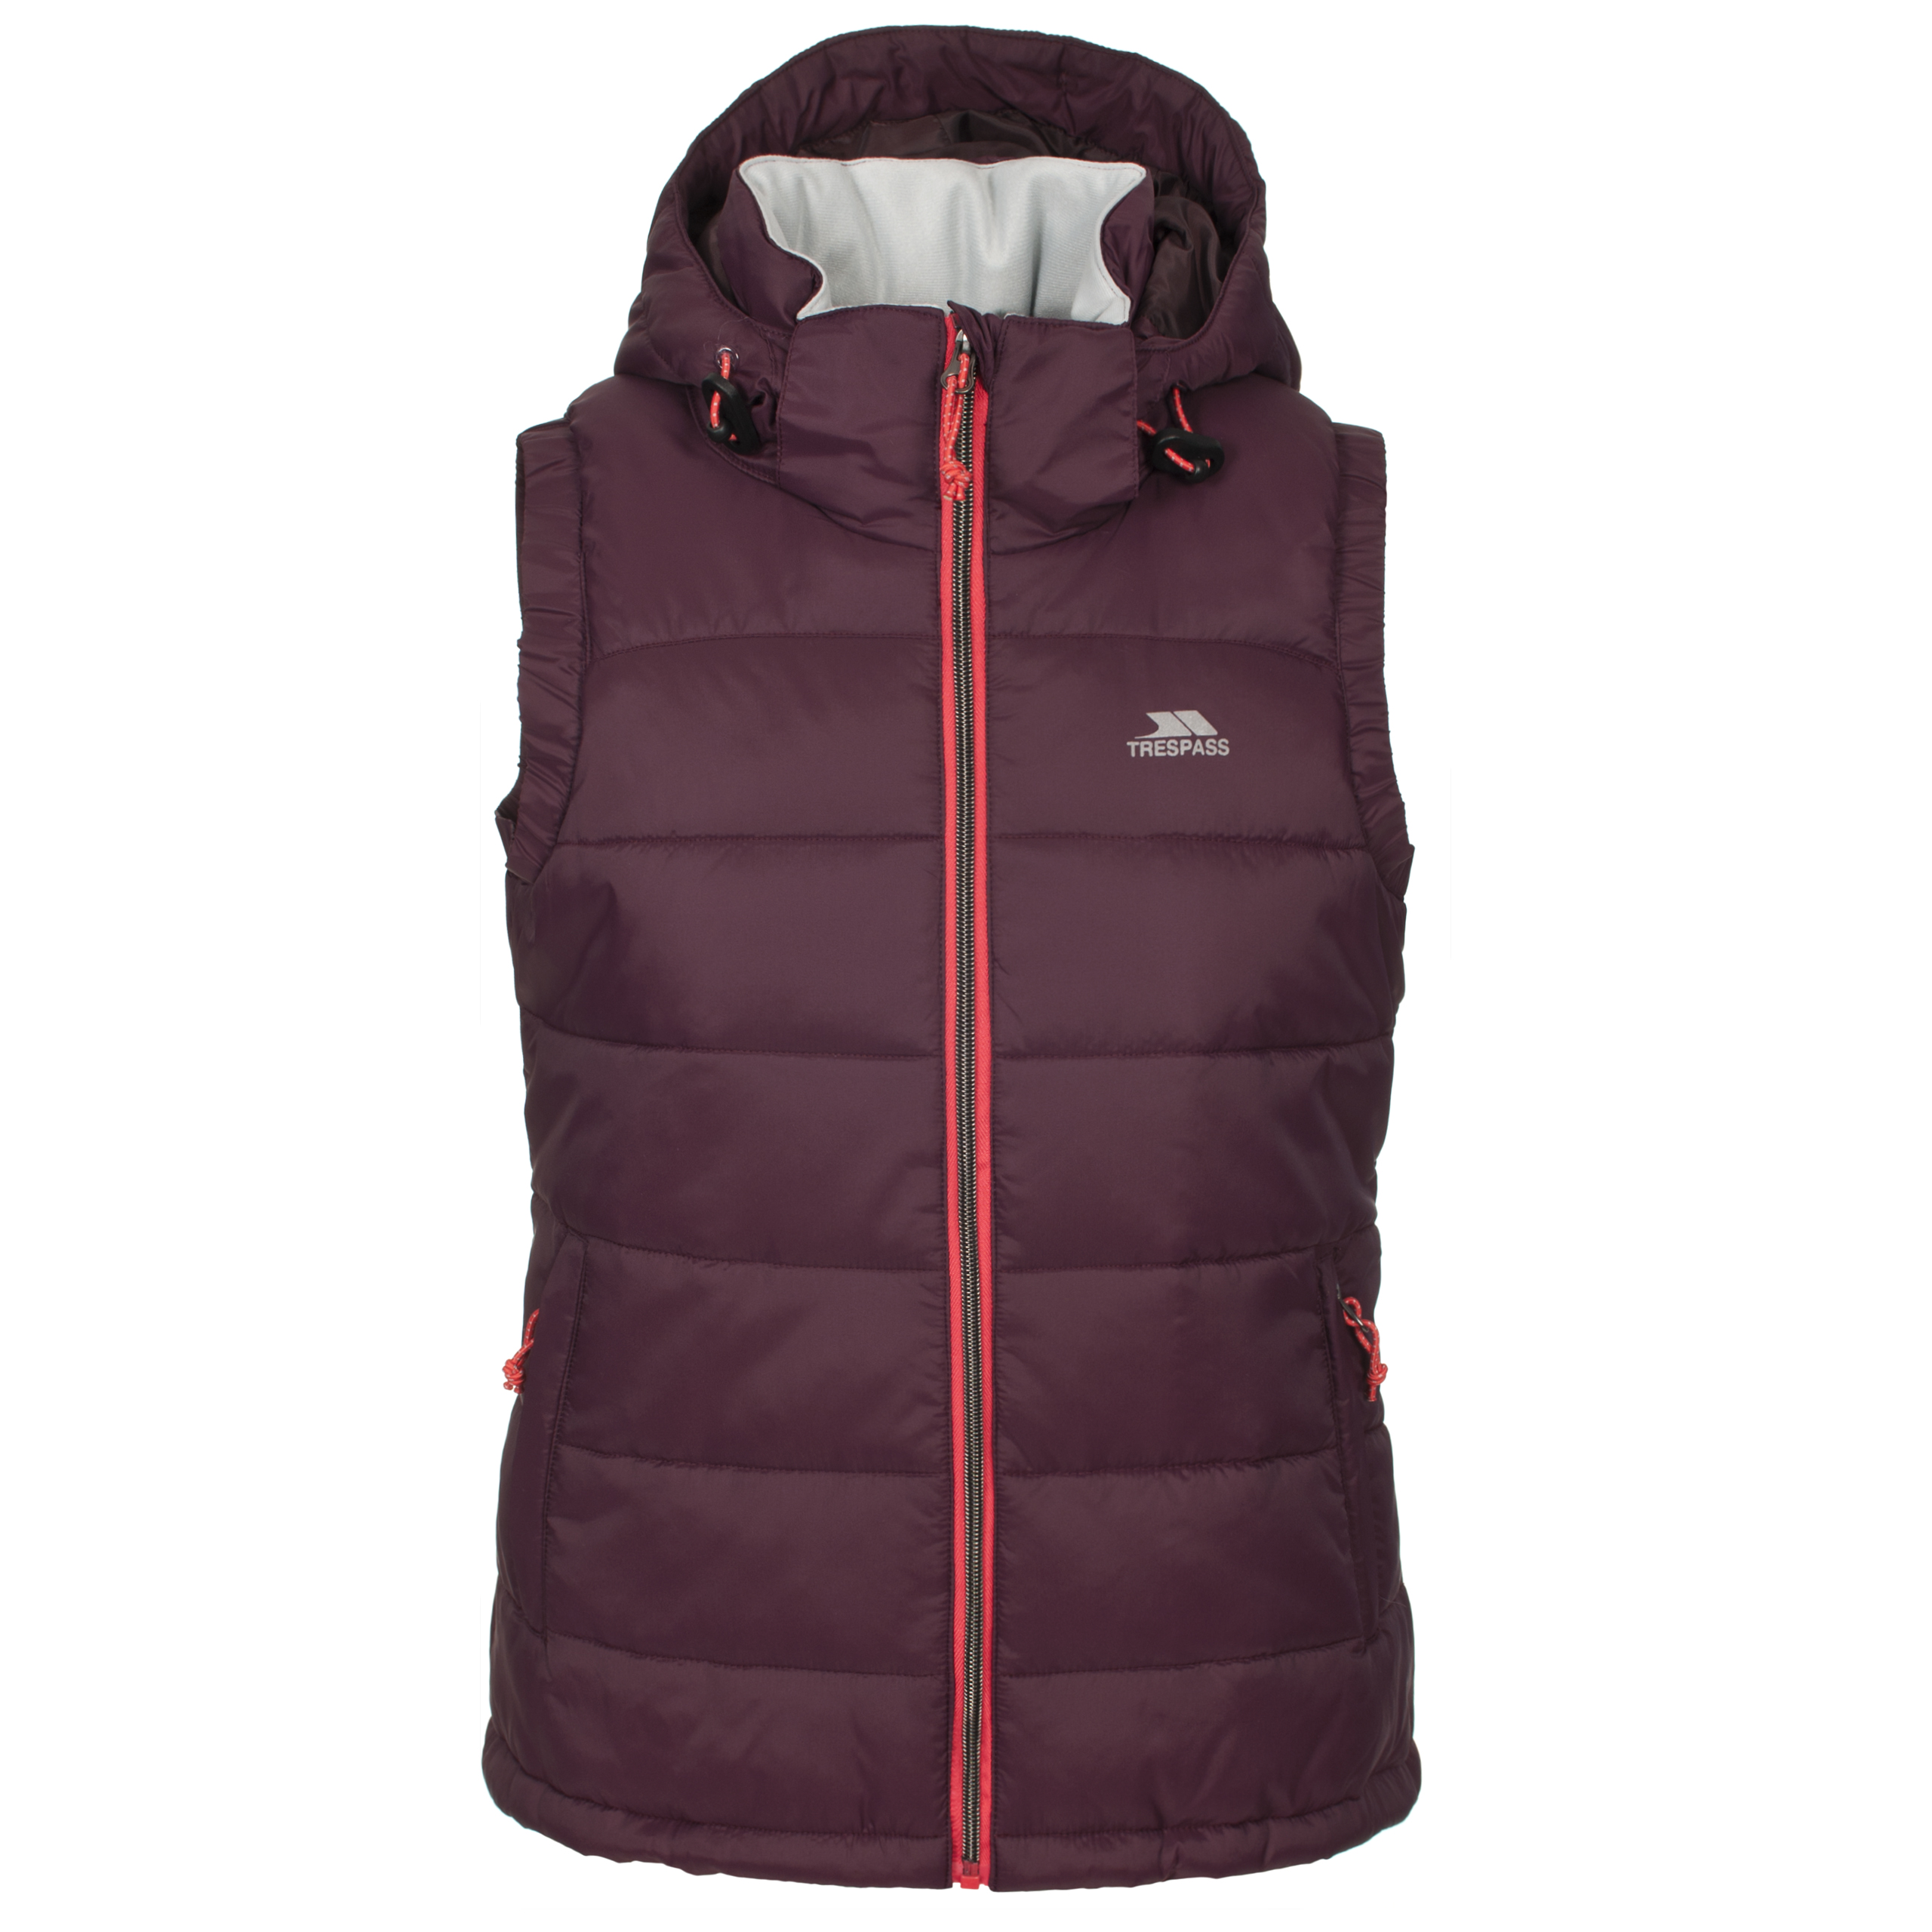 This ladies lightweight padded gilet is fully-lined, featuring functional pockets and a zip fastening. Stylish and practical, this web exclusive gilet is perfect for layering, wear over a long-sleeve top or jumper for a smart-casual look.